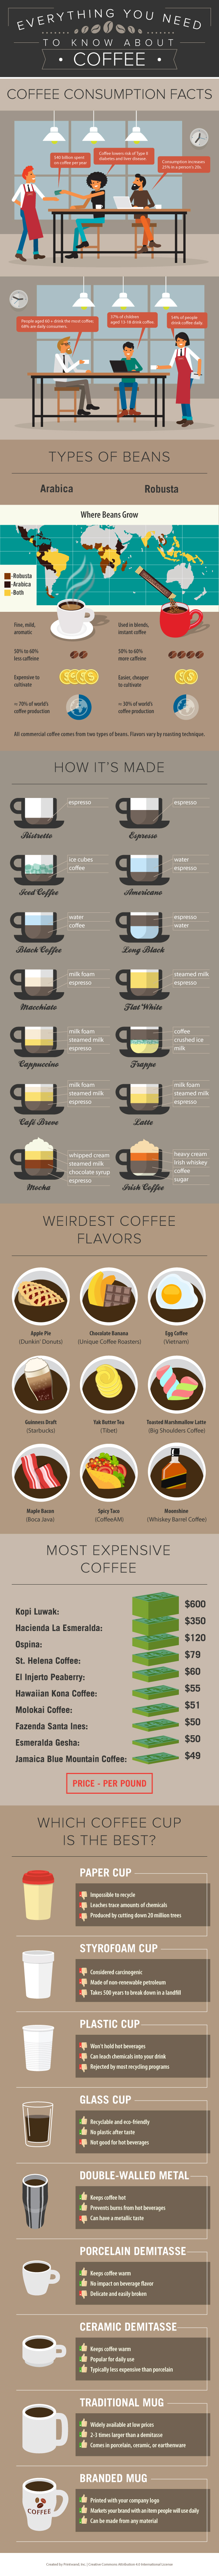 everything-you-need-to-know-about-coffee